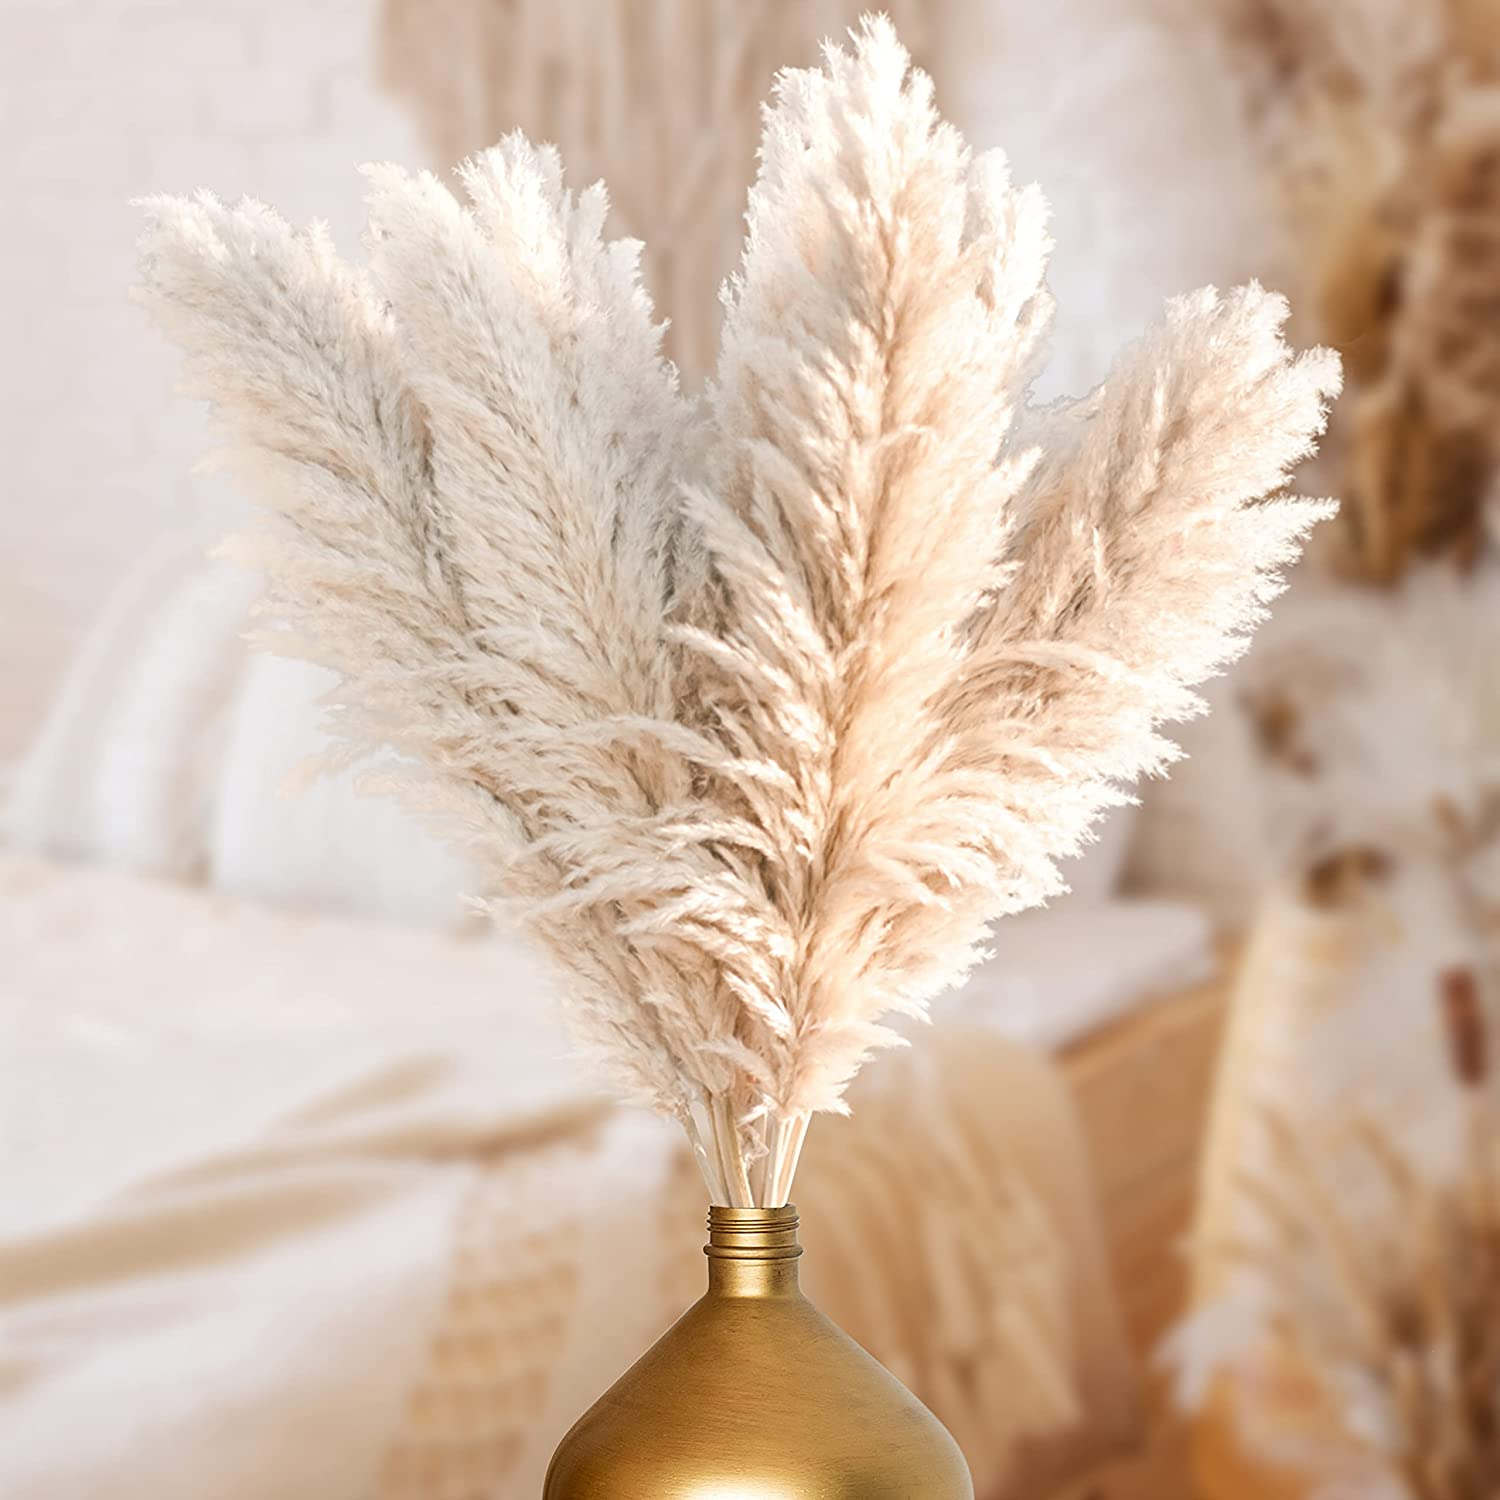 Homexxpress Pampas Grass - Natural Dried, Fluffy Decorative Plant for Bouquet & Home Flower Arrangements - Rustic Boho Decor for Living Room, Bedroom, Wedding Party - 45 Inches Tall, 3-Pack, Off White